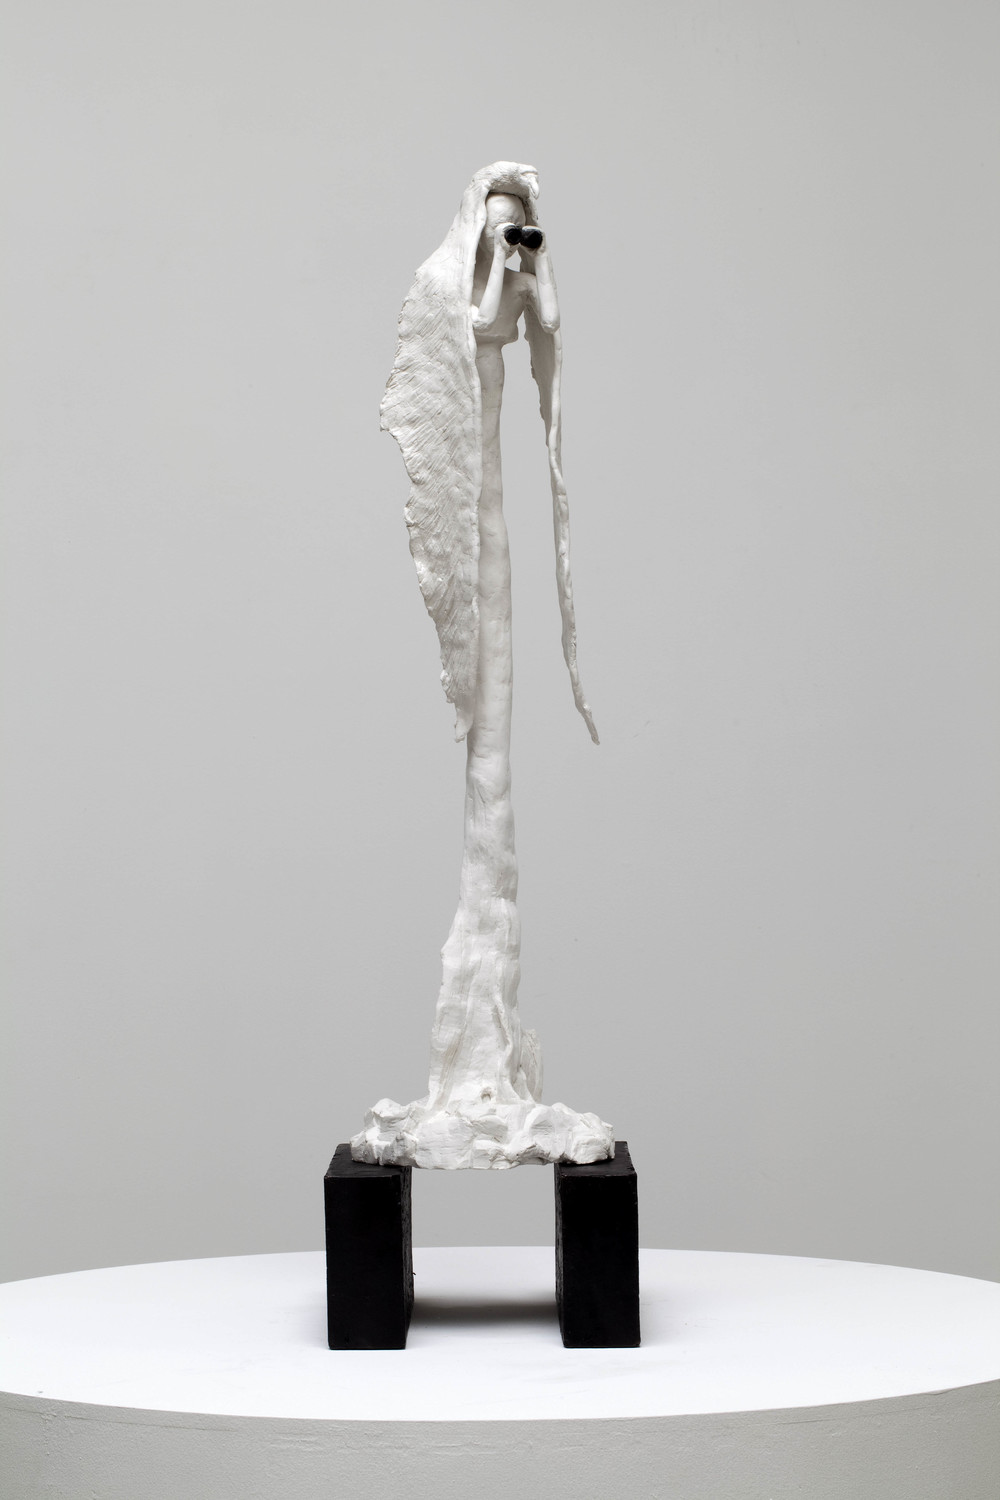 Albatross, bronze, polymer modelling clay  78 x 17 x 22cm, 2011. Photography by Ashley Barber, Sarah Cottier Gallery. Private collection.